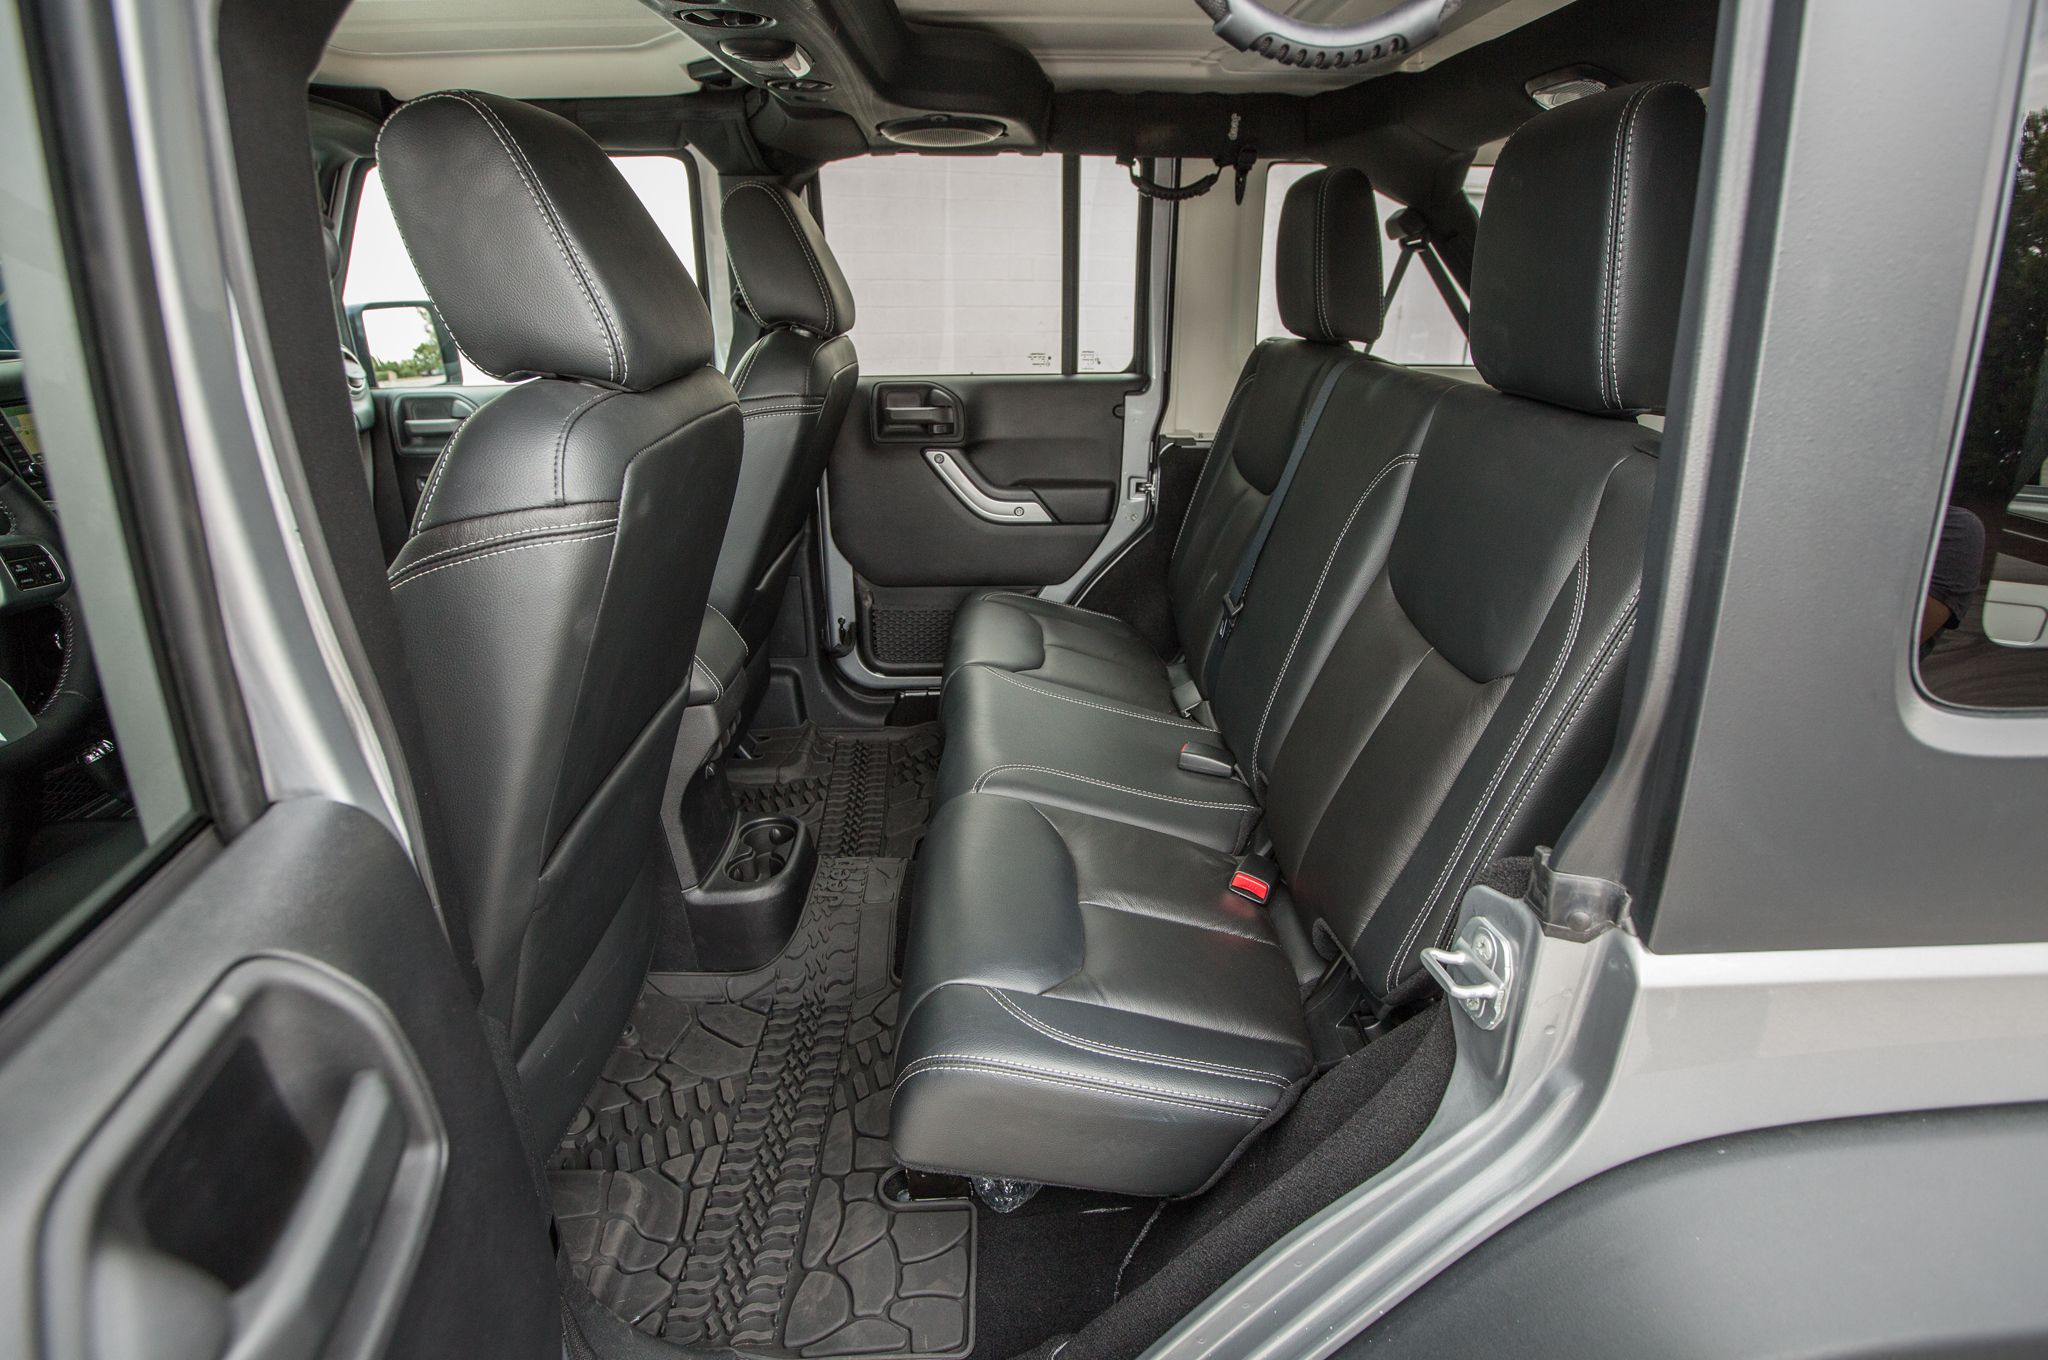 2014 jeep rubicon interior. jeep wrangler rubicon interior google search 2014